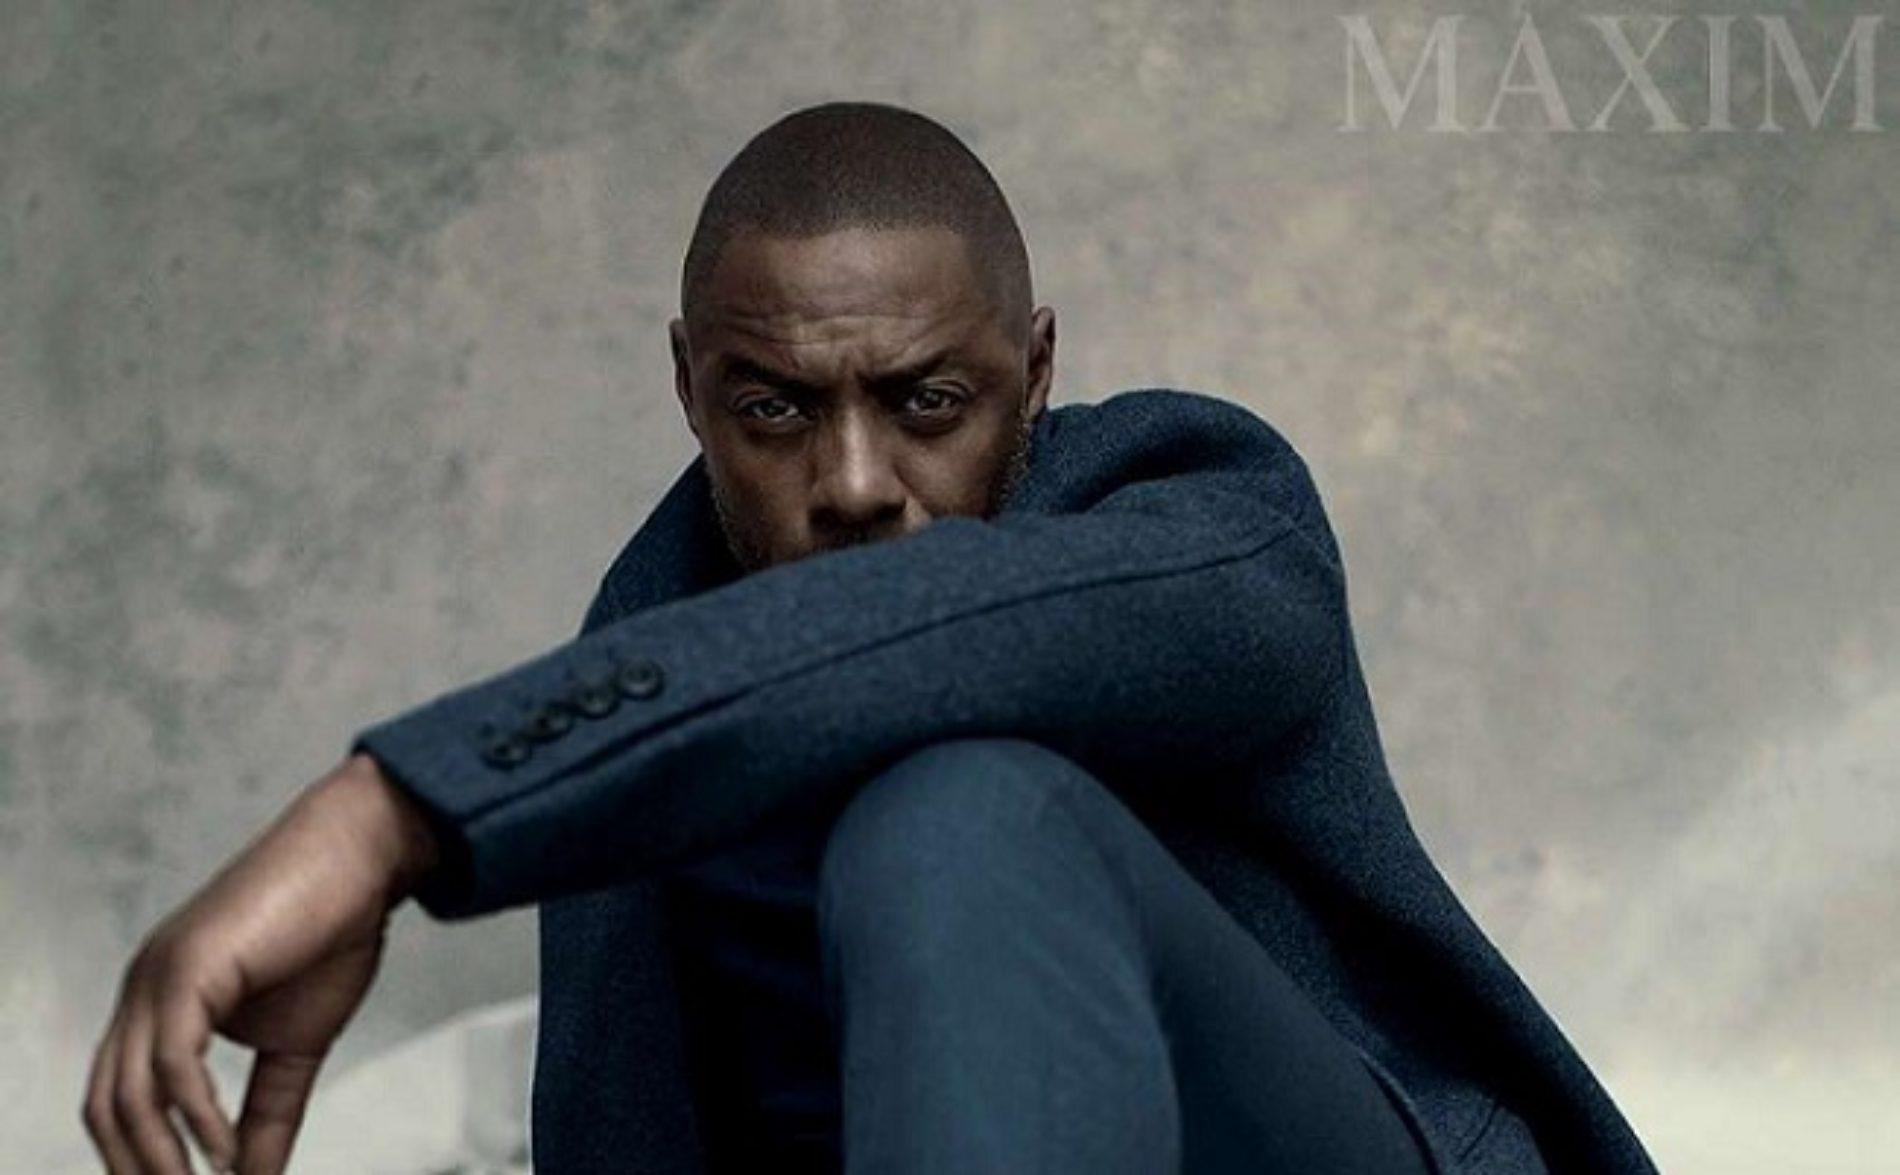 Idris Elba Knows People Follow Him Because They Think He's Very Well-Endowed